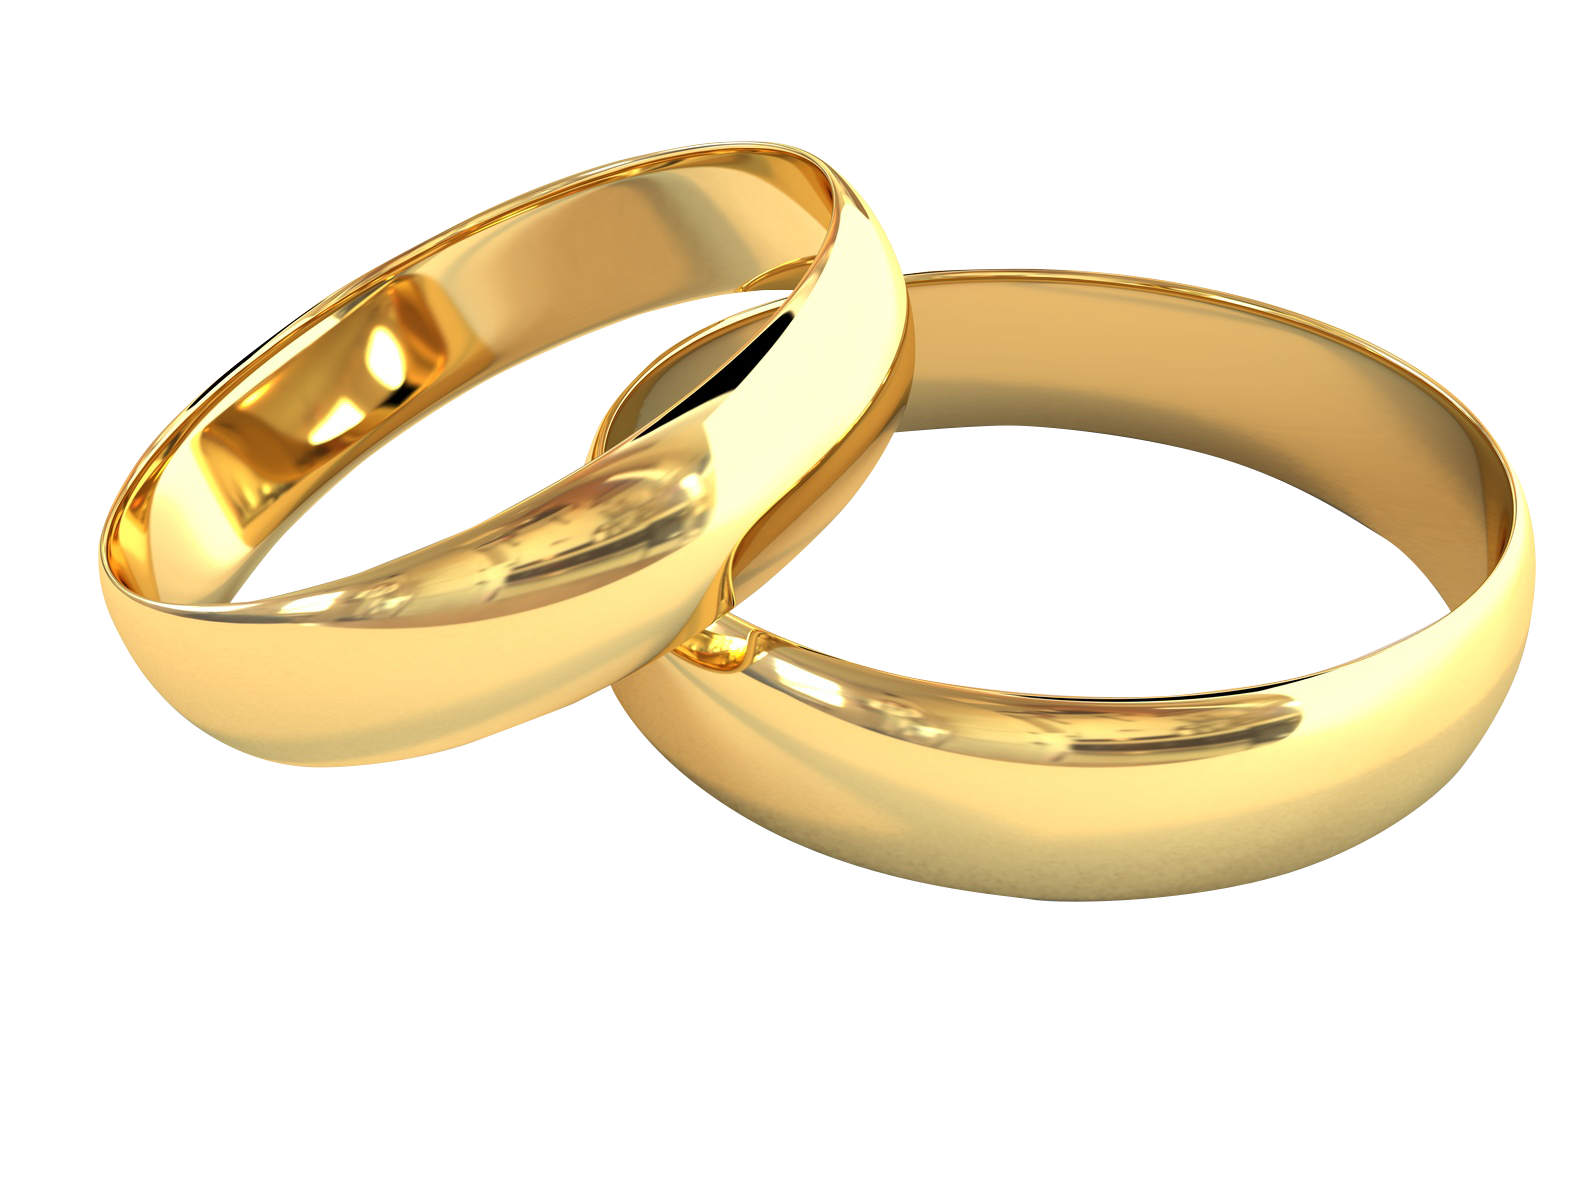 Wedding band png. Ring images free clipart